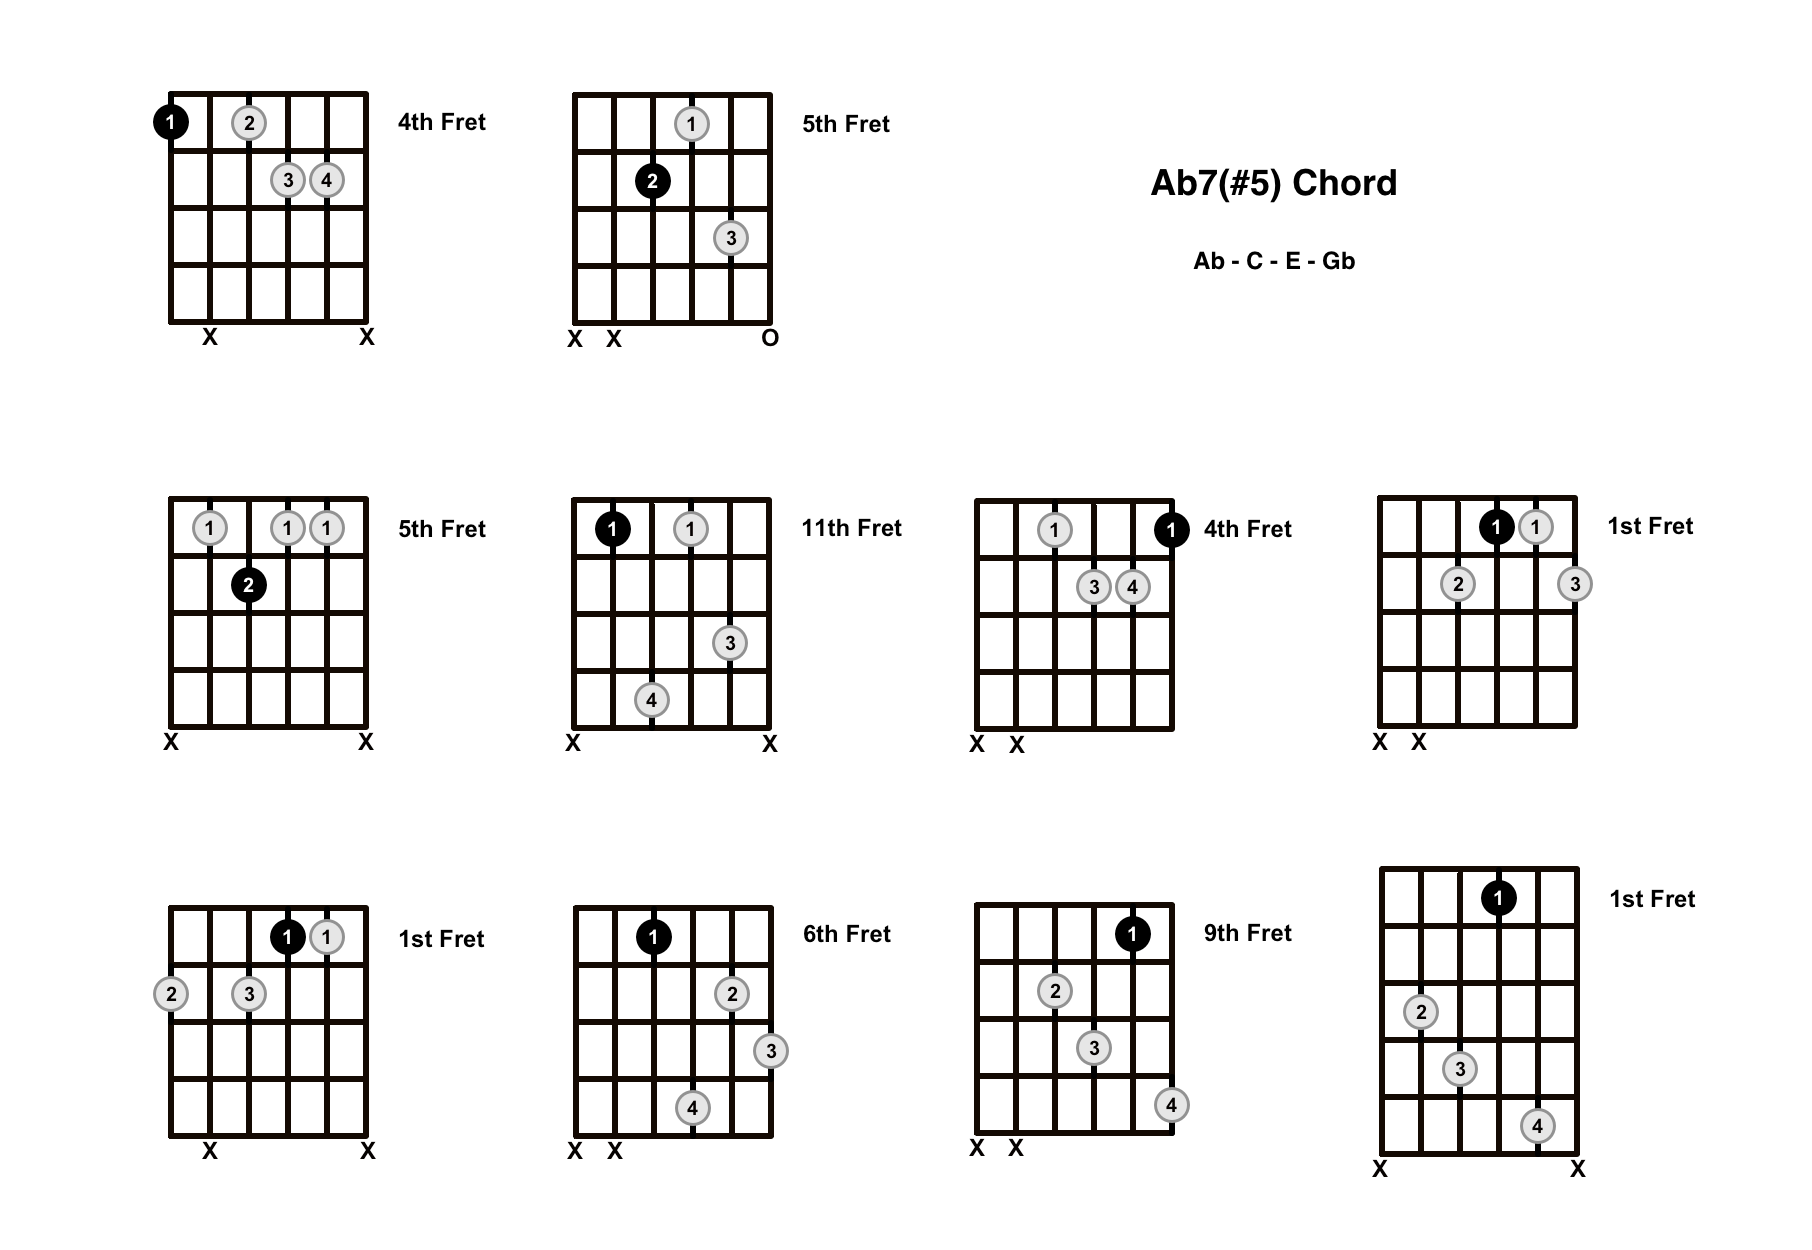 A Flat Augmented 7 Chord On The Guitar (Ab7#5, Ab+7) – Diagrams, Finger Positions and Theory